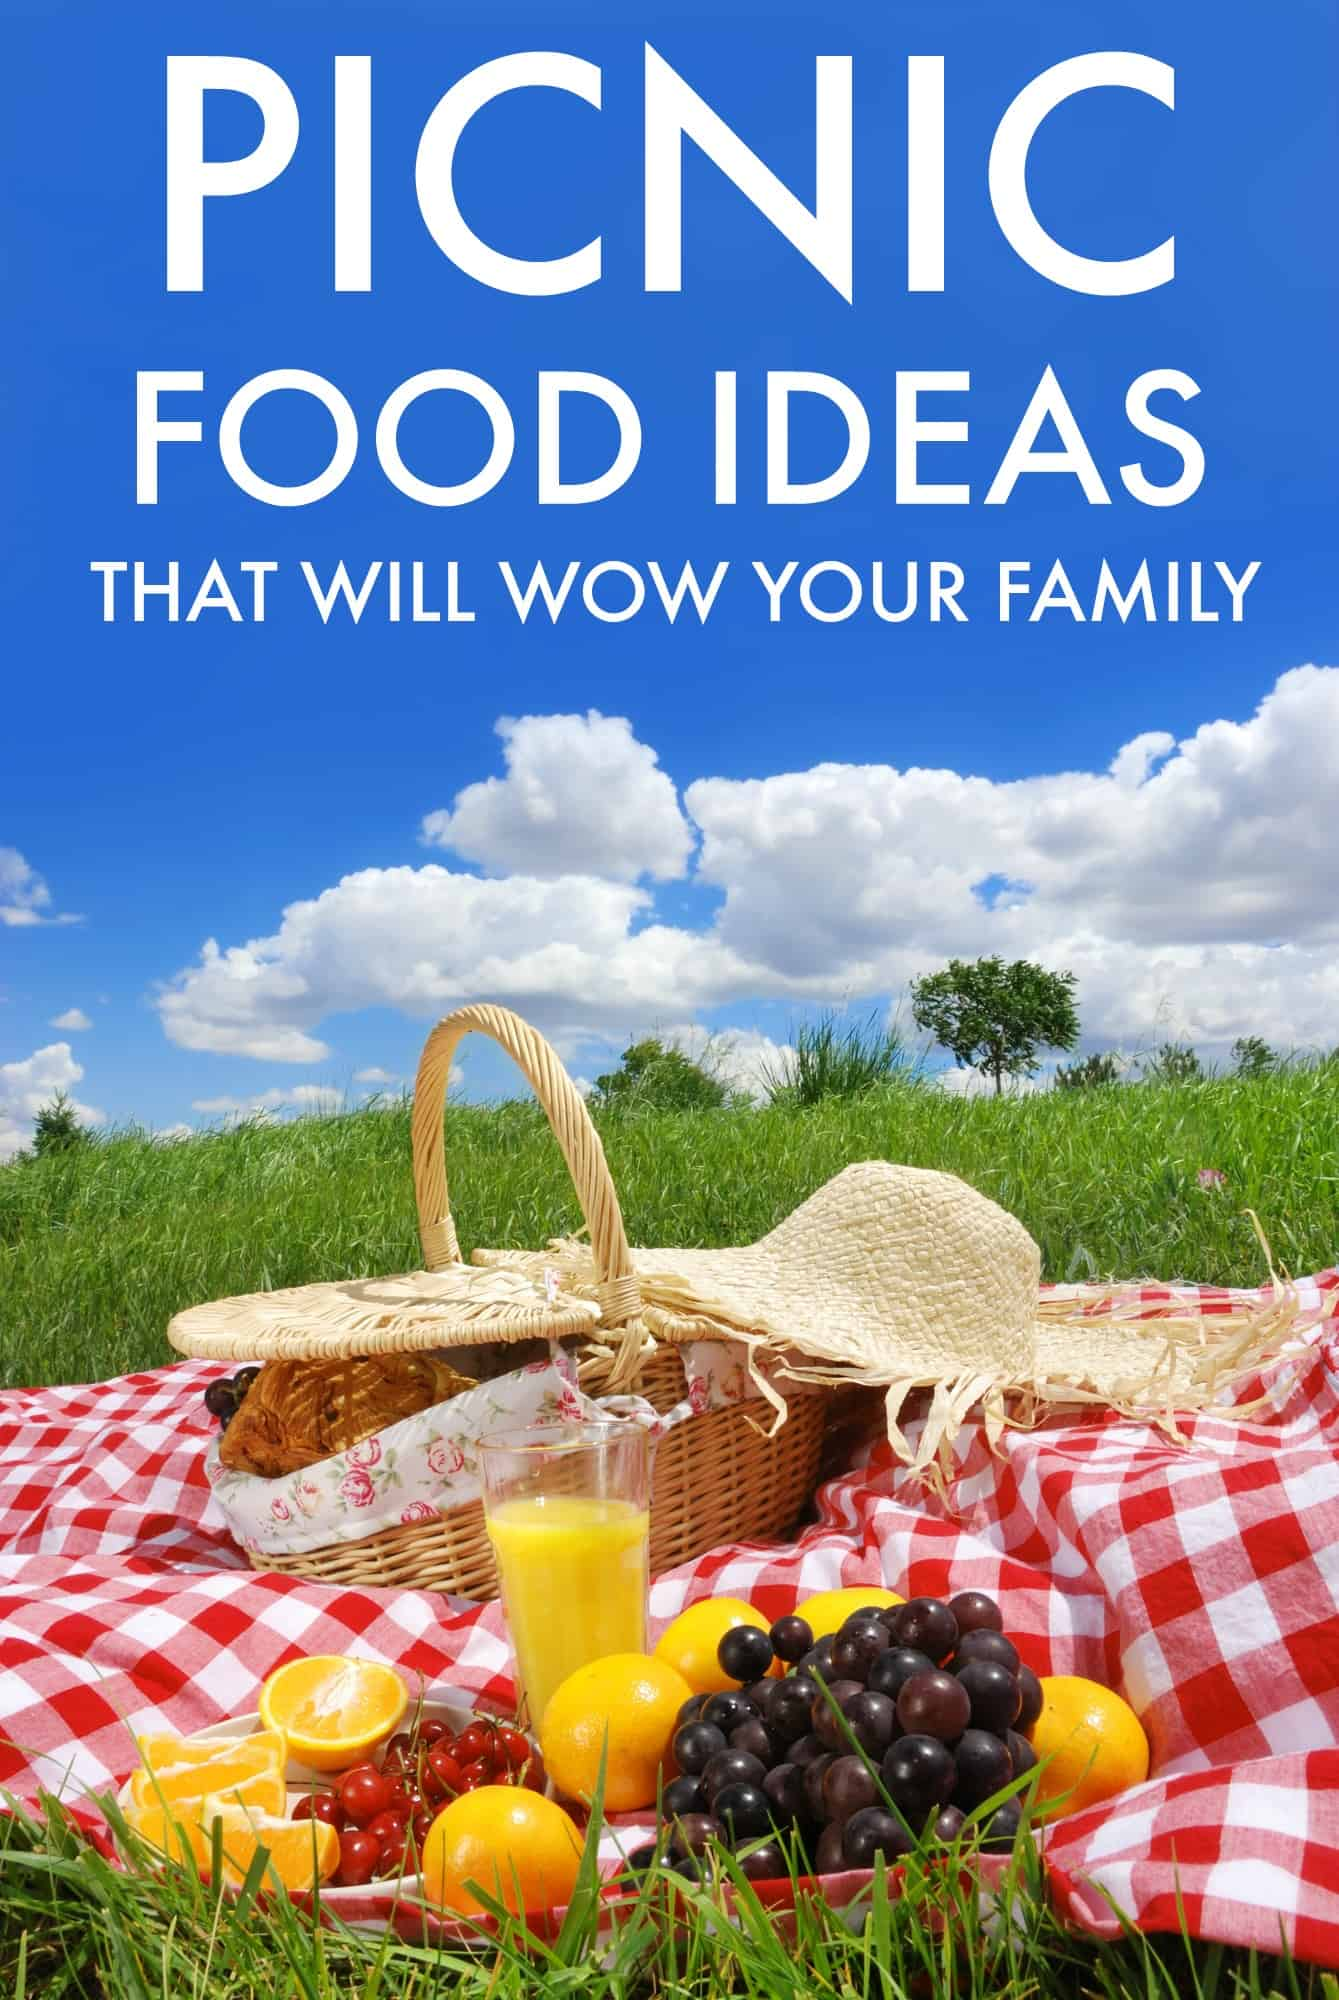 Picnic Food Ideas That Will Wow Your Family - Eat well and enjoy your picnic!